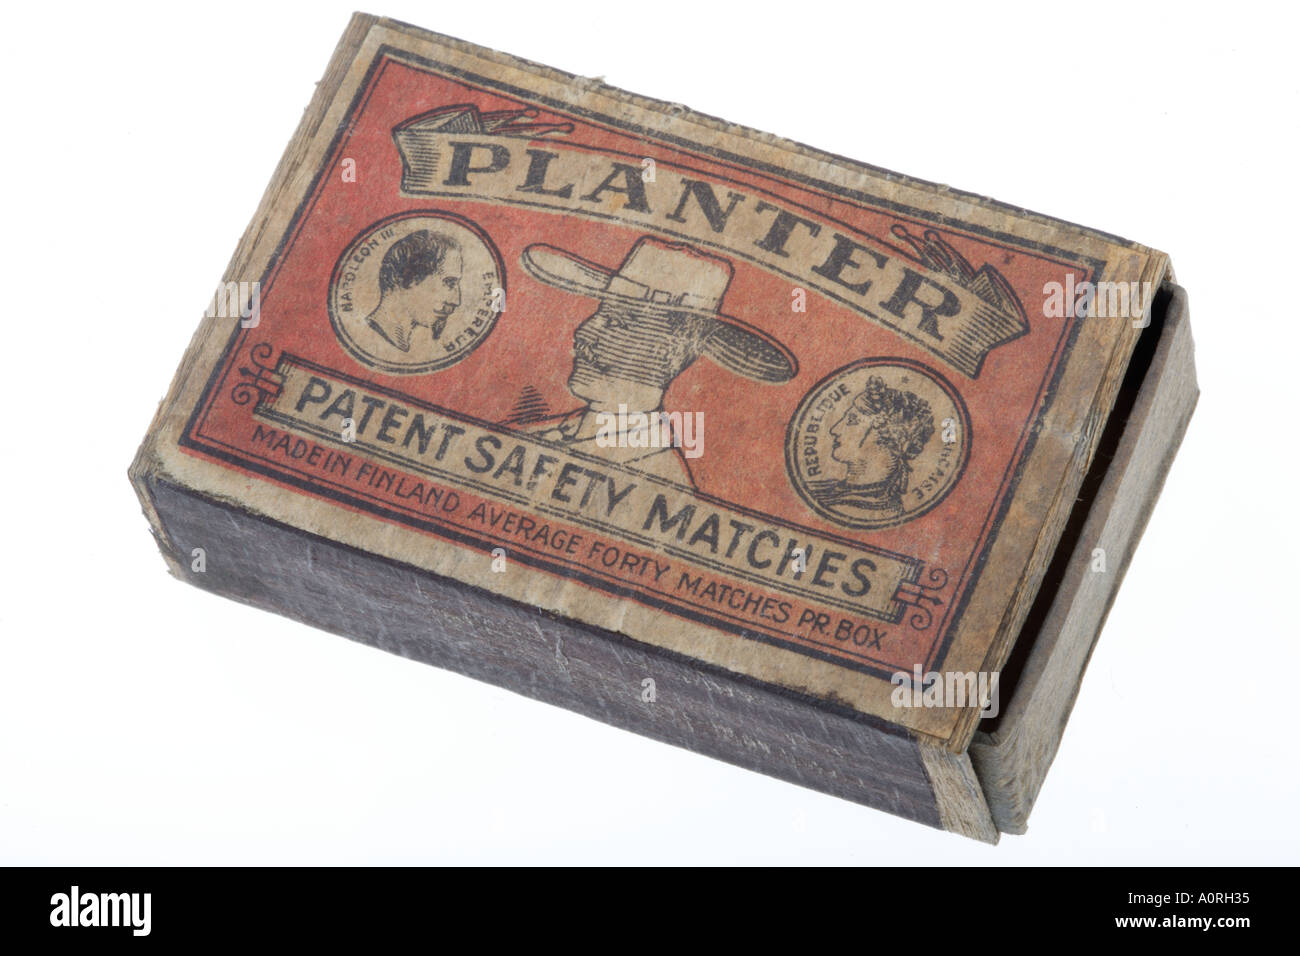 old box of Matches Planter safety match box Made in Finland - Stock Image